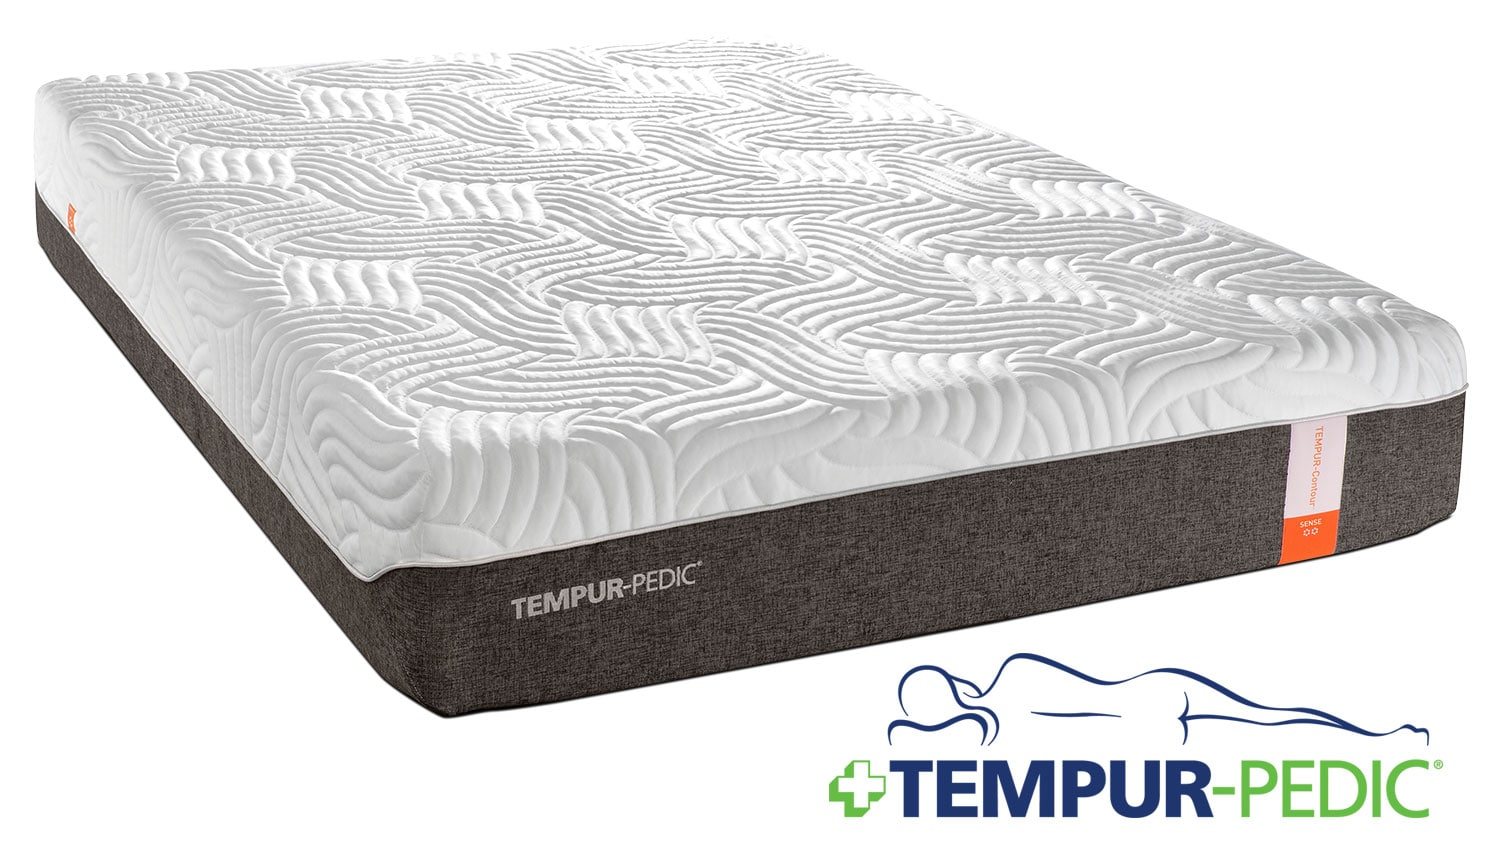 Mattresses and Bedding - Tempur-Pedic Sense Queen Mattress